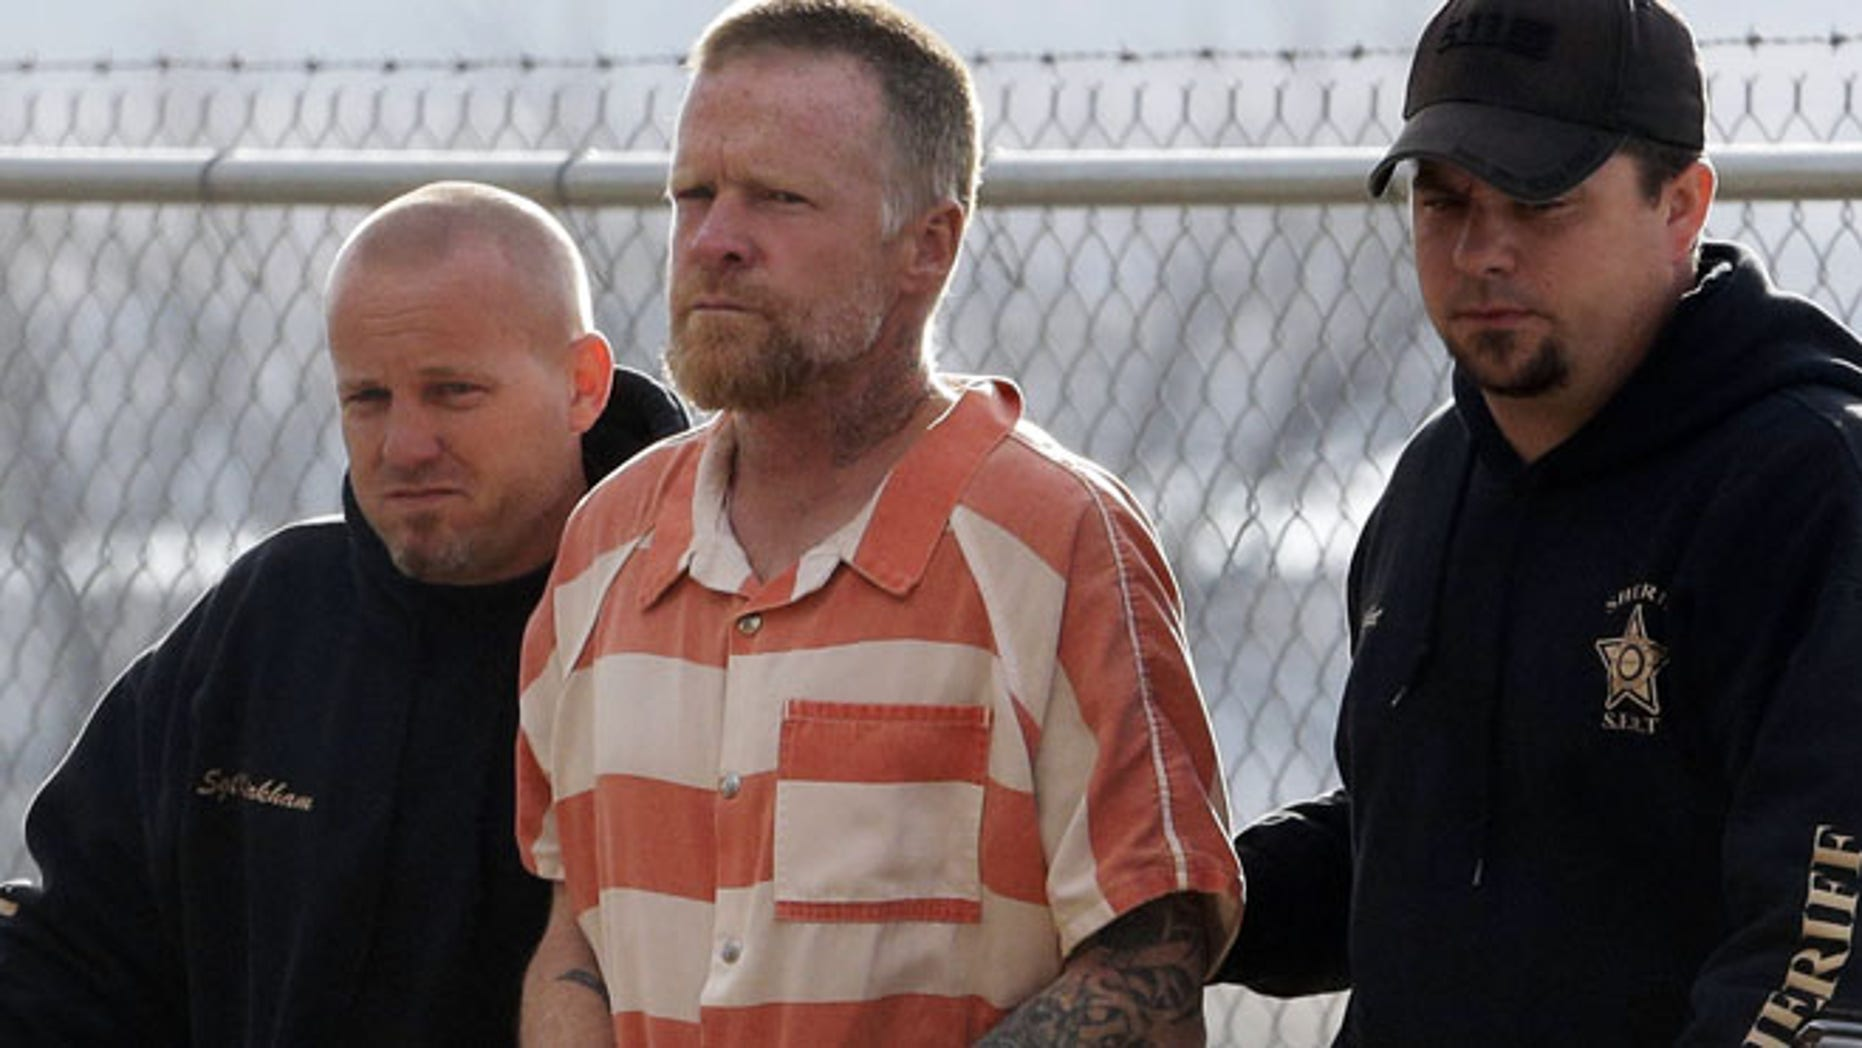 April 2: Sanpete Sheriff's Officers escort Troy James Knapp, 45, to the Sanpete County Jail Tuesday in Manti, Utah